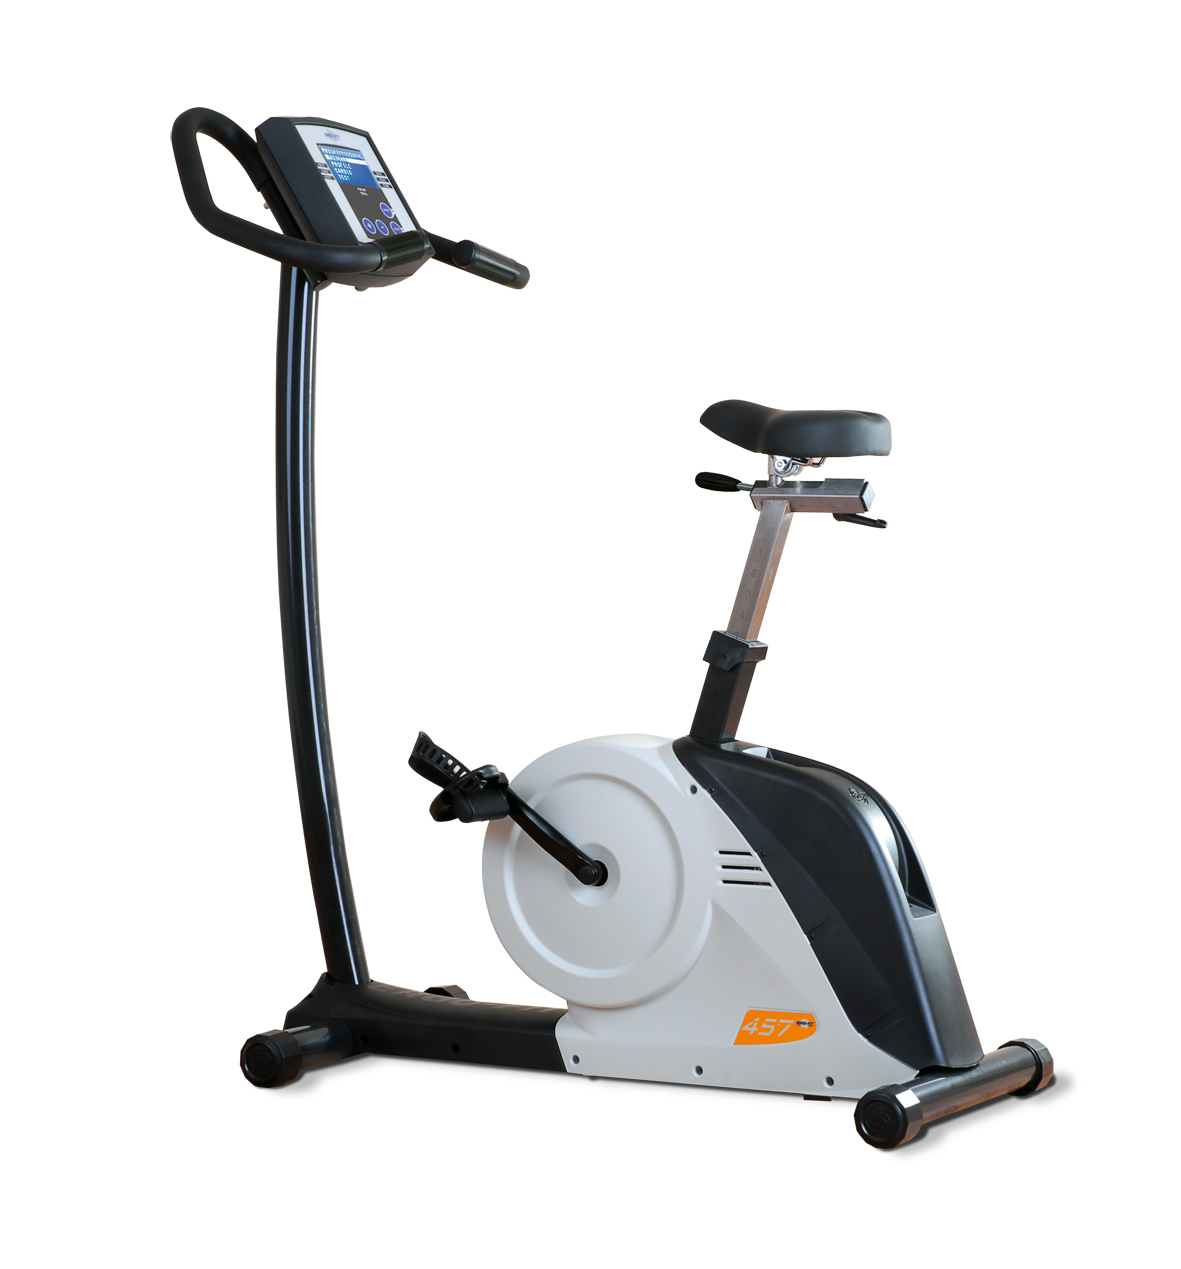 Ergo-Fit Cardio-Therapie